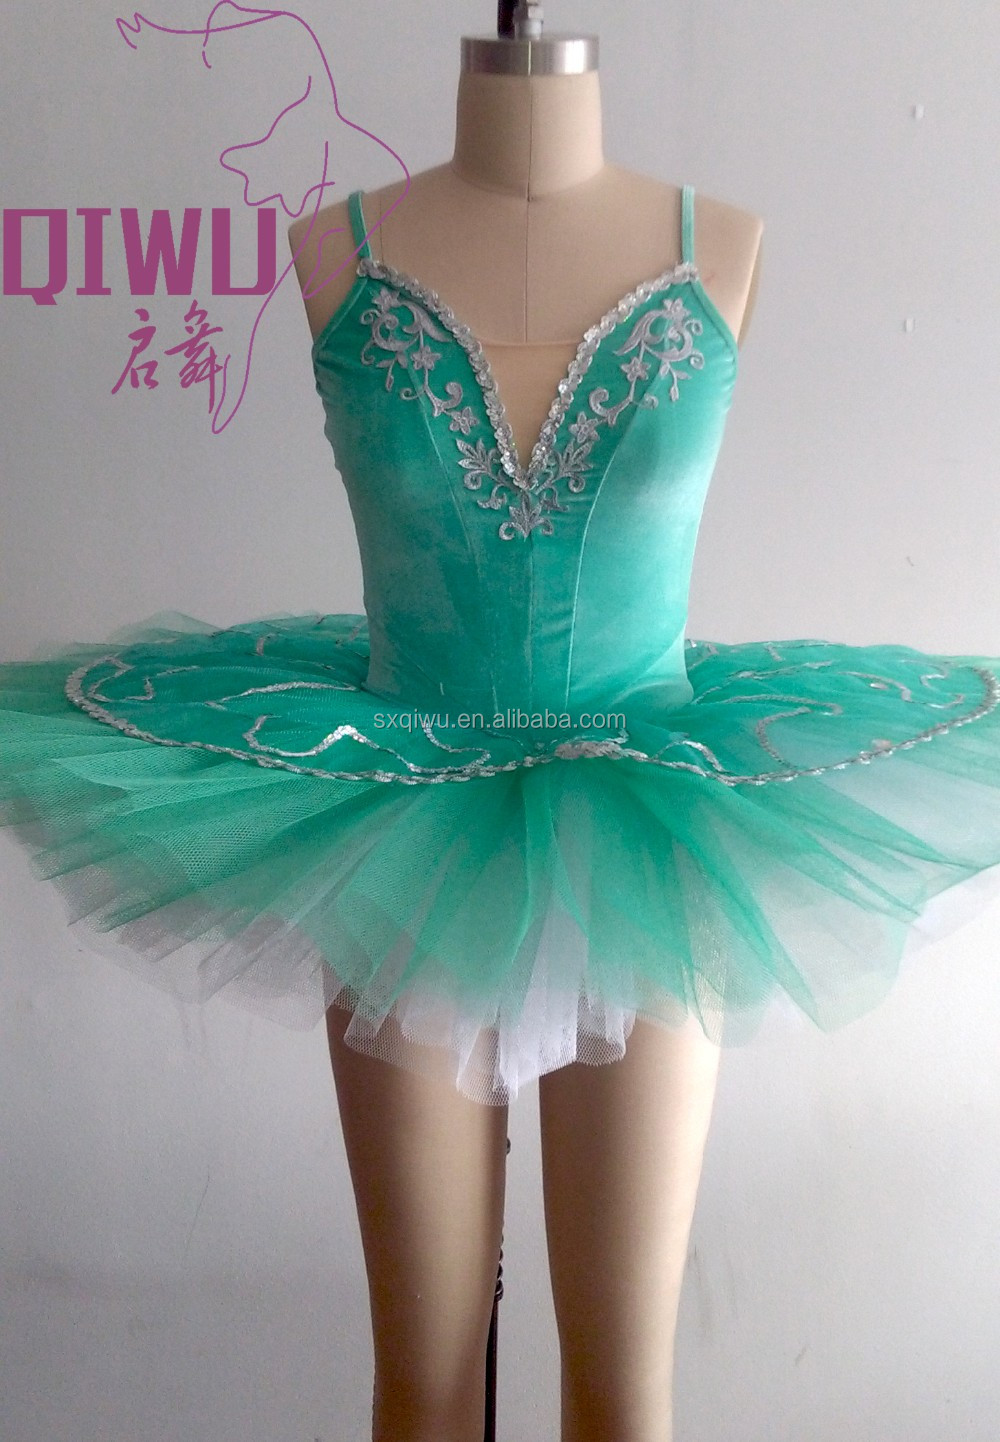 Classic Dance Dress, Classic Dance Dress Suppliers and Manufacturers ...